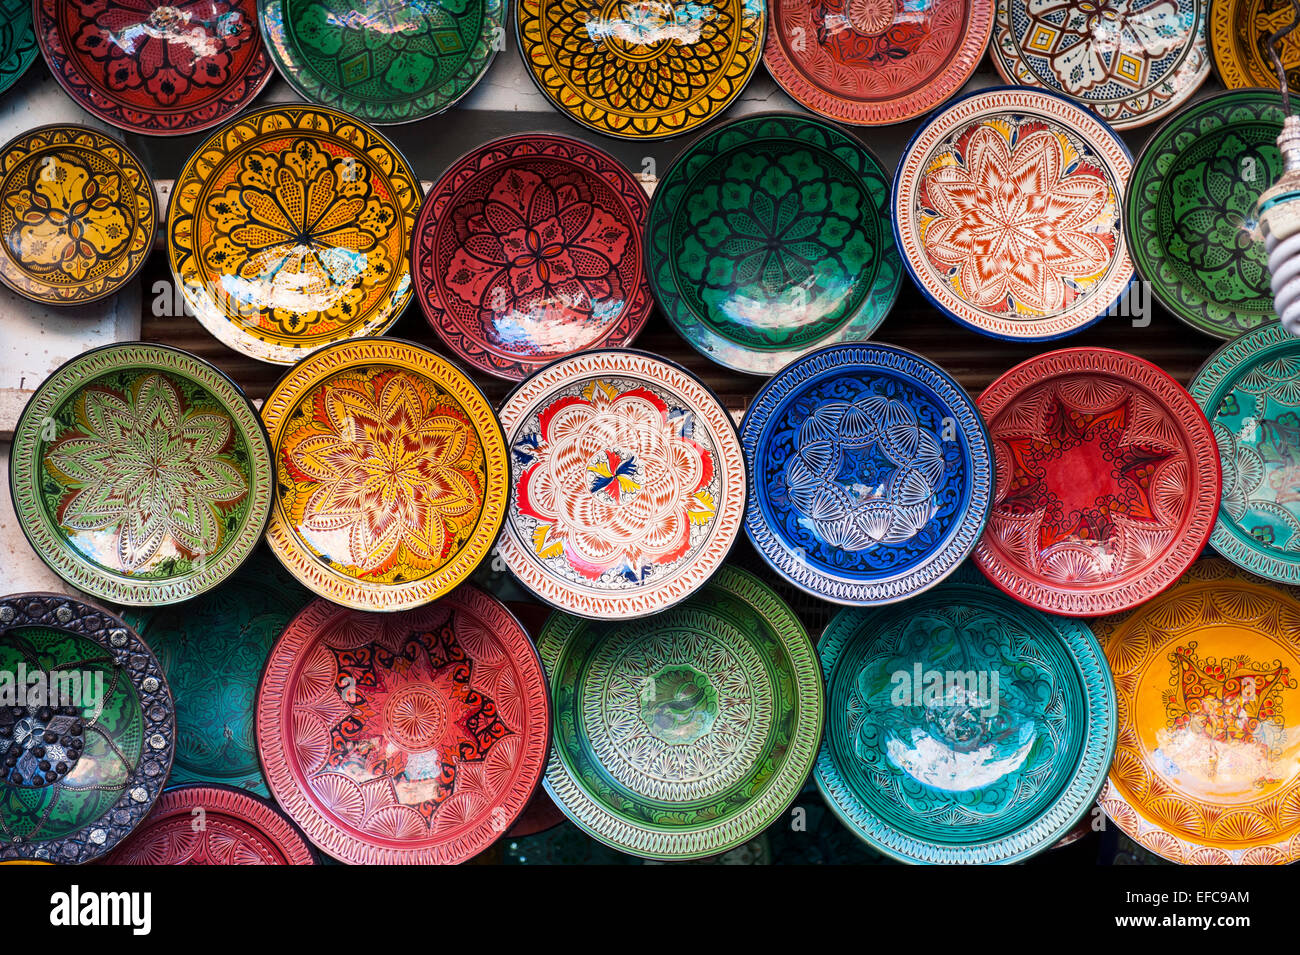 Ceramic plates on sale in a market, Marrakesh, Morocco - Stock Image